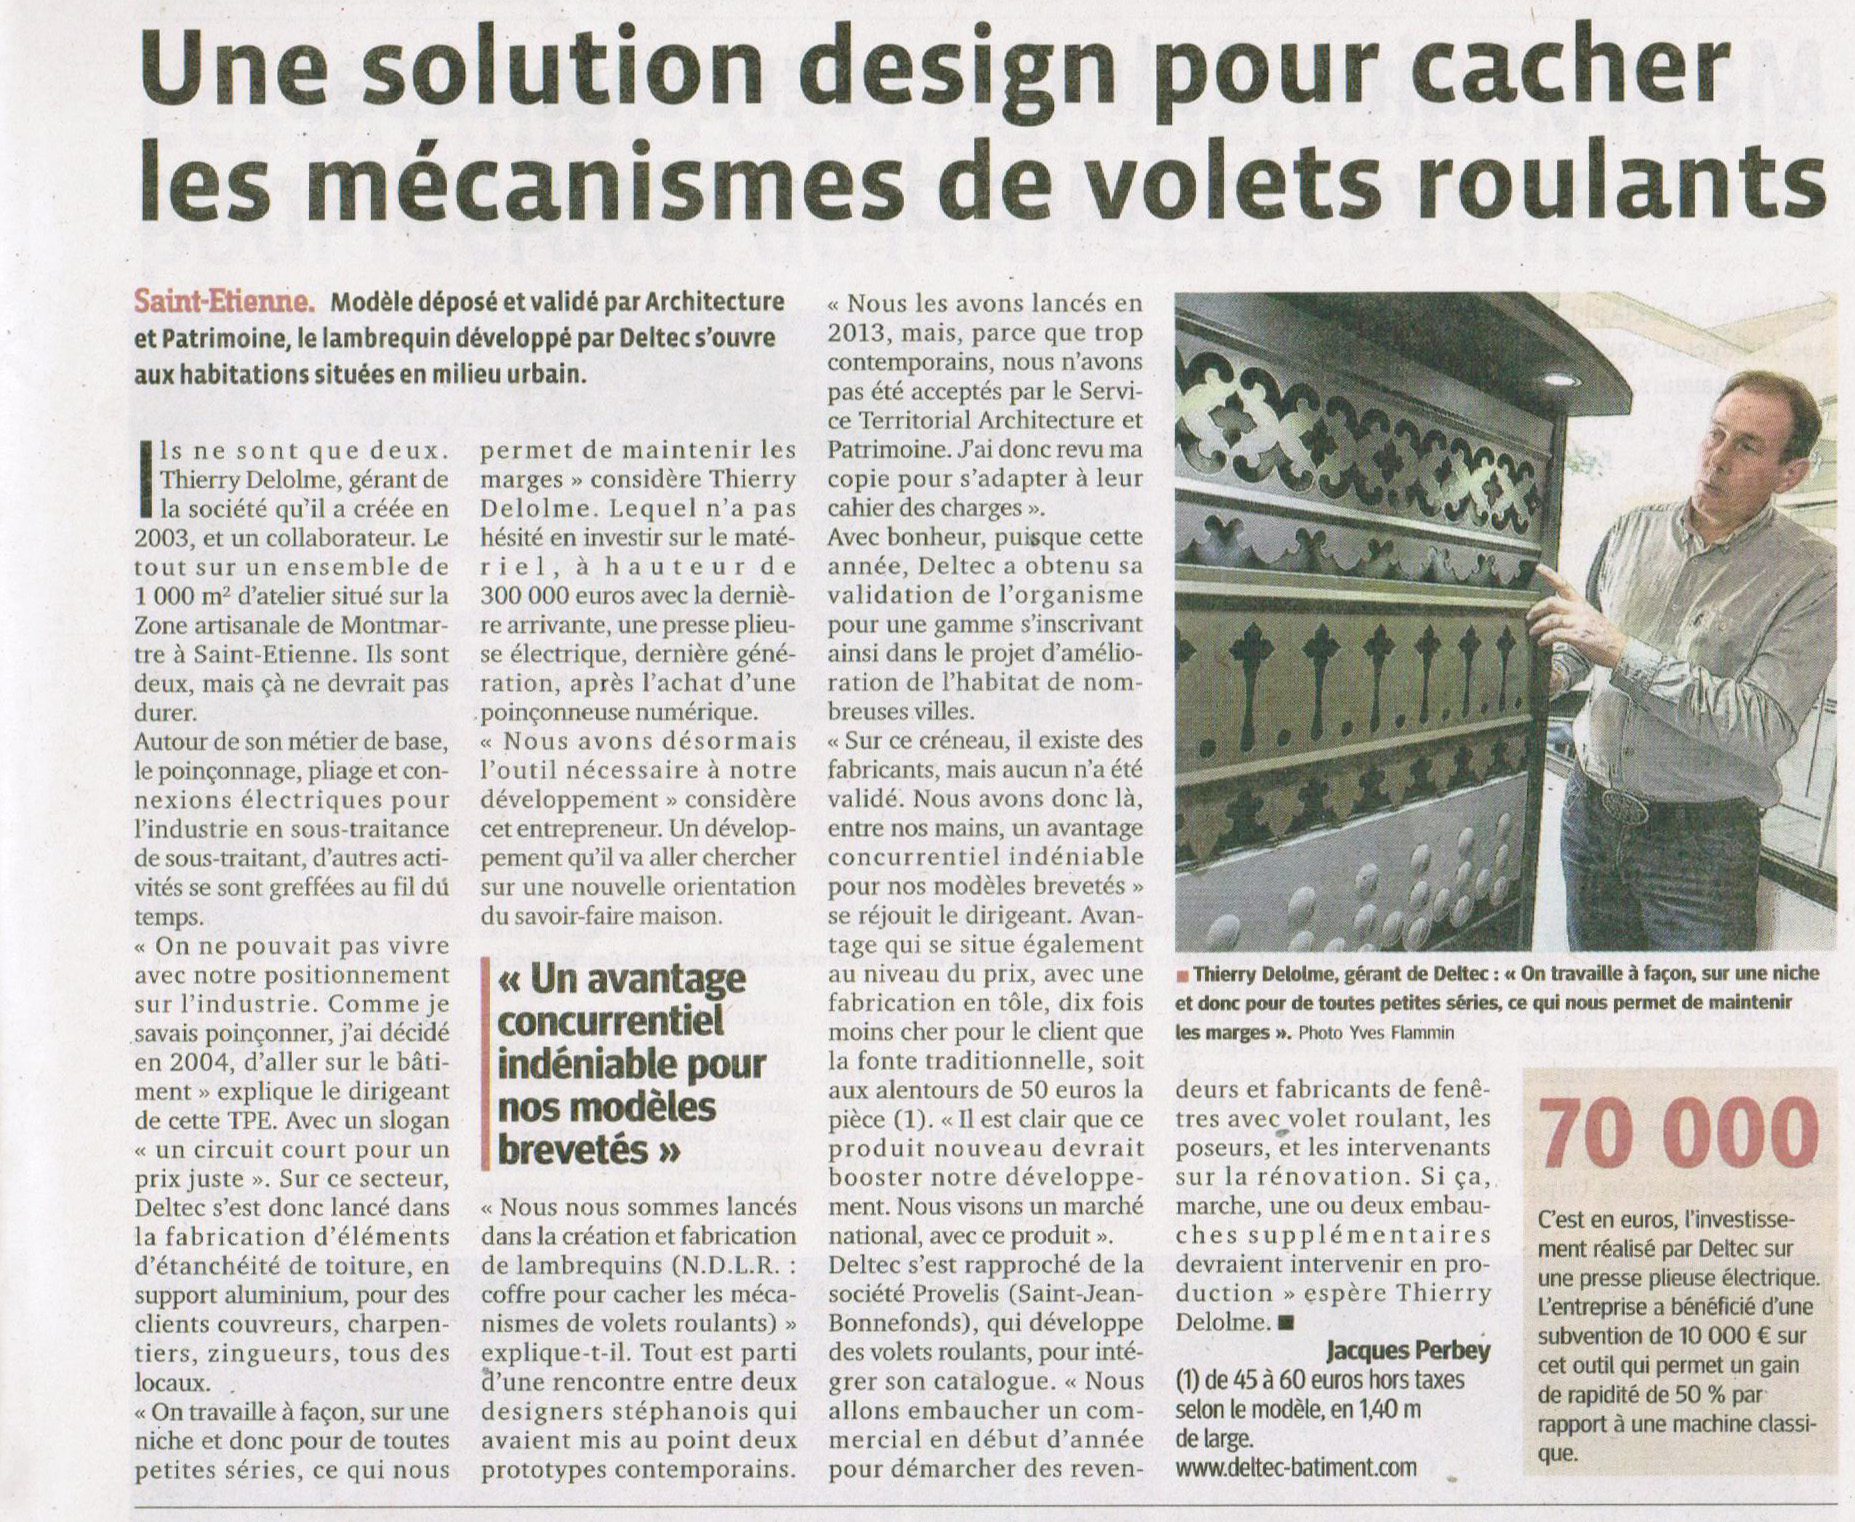 Une solution design